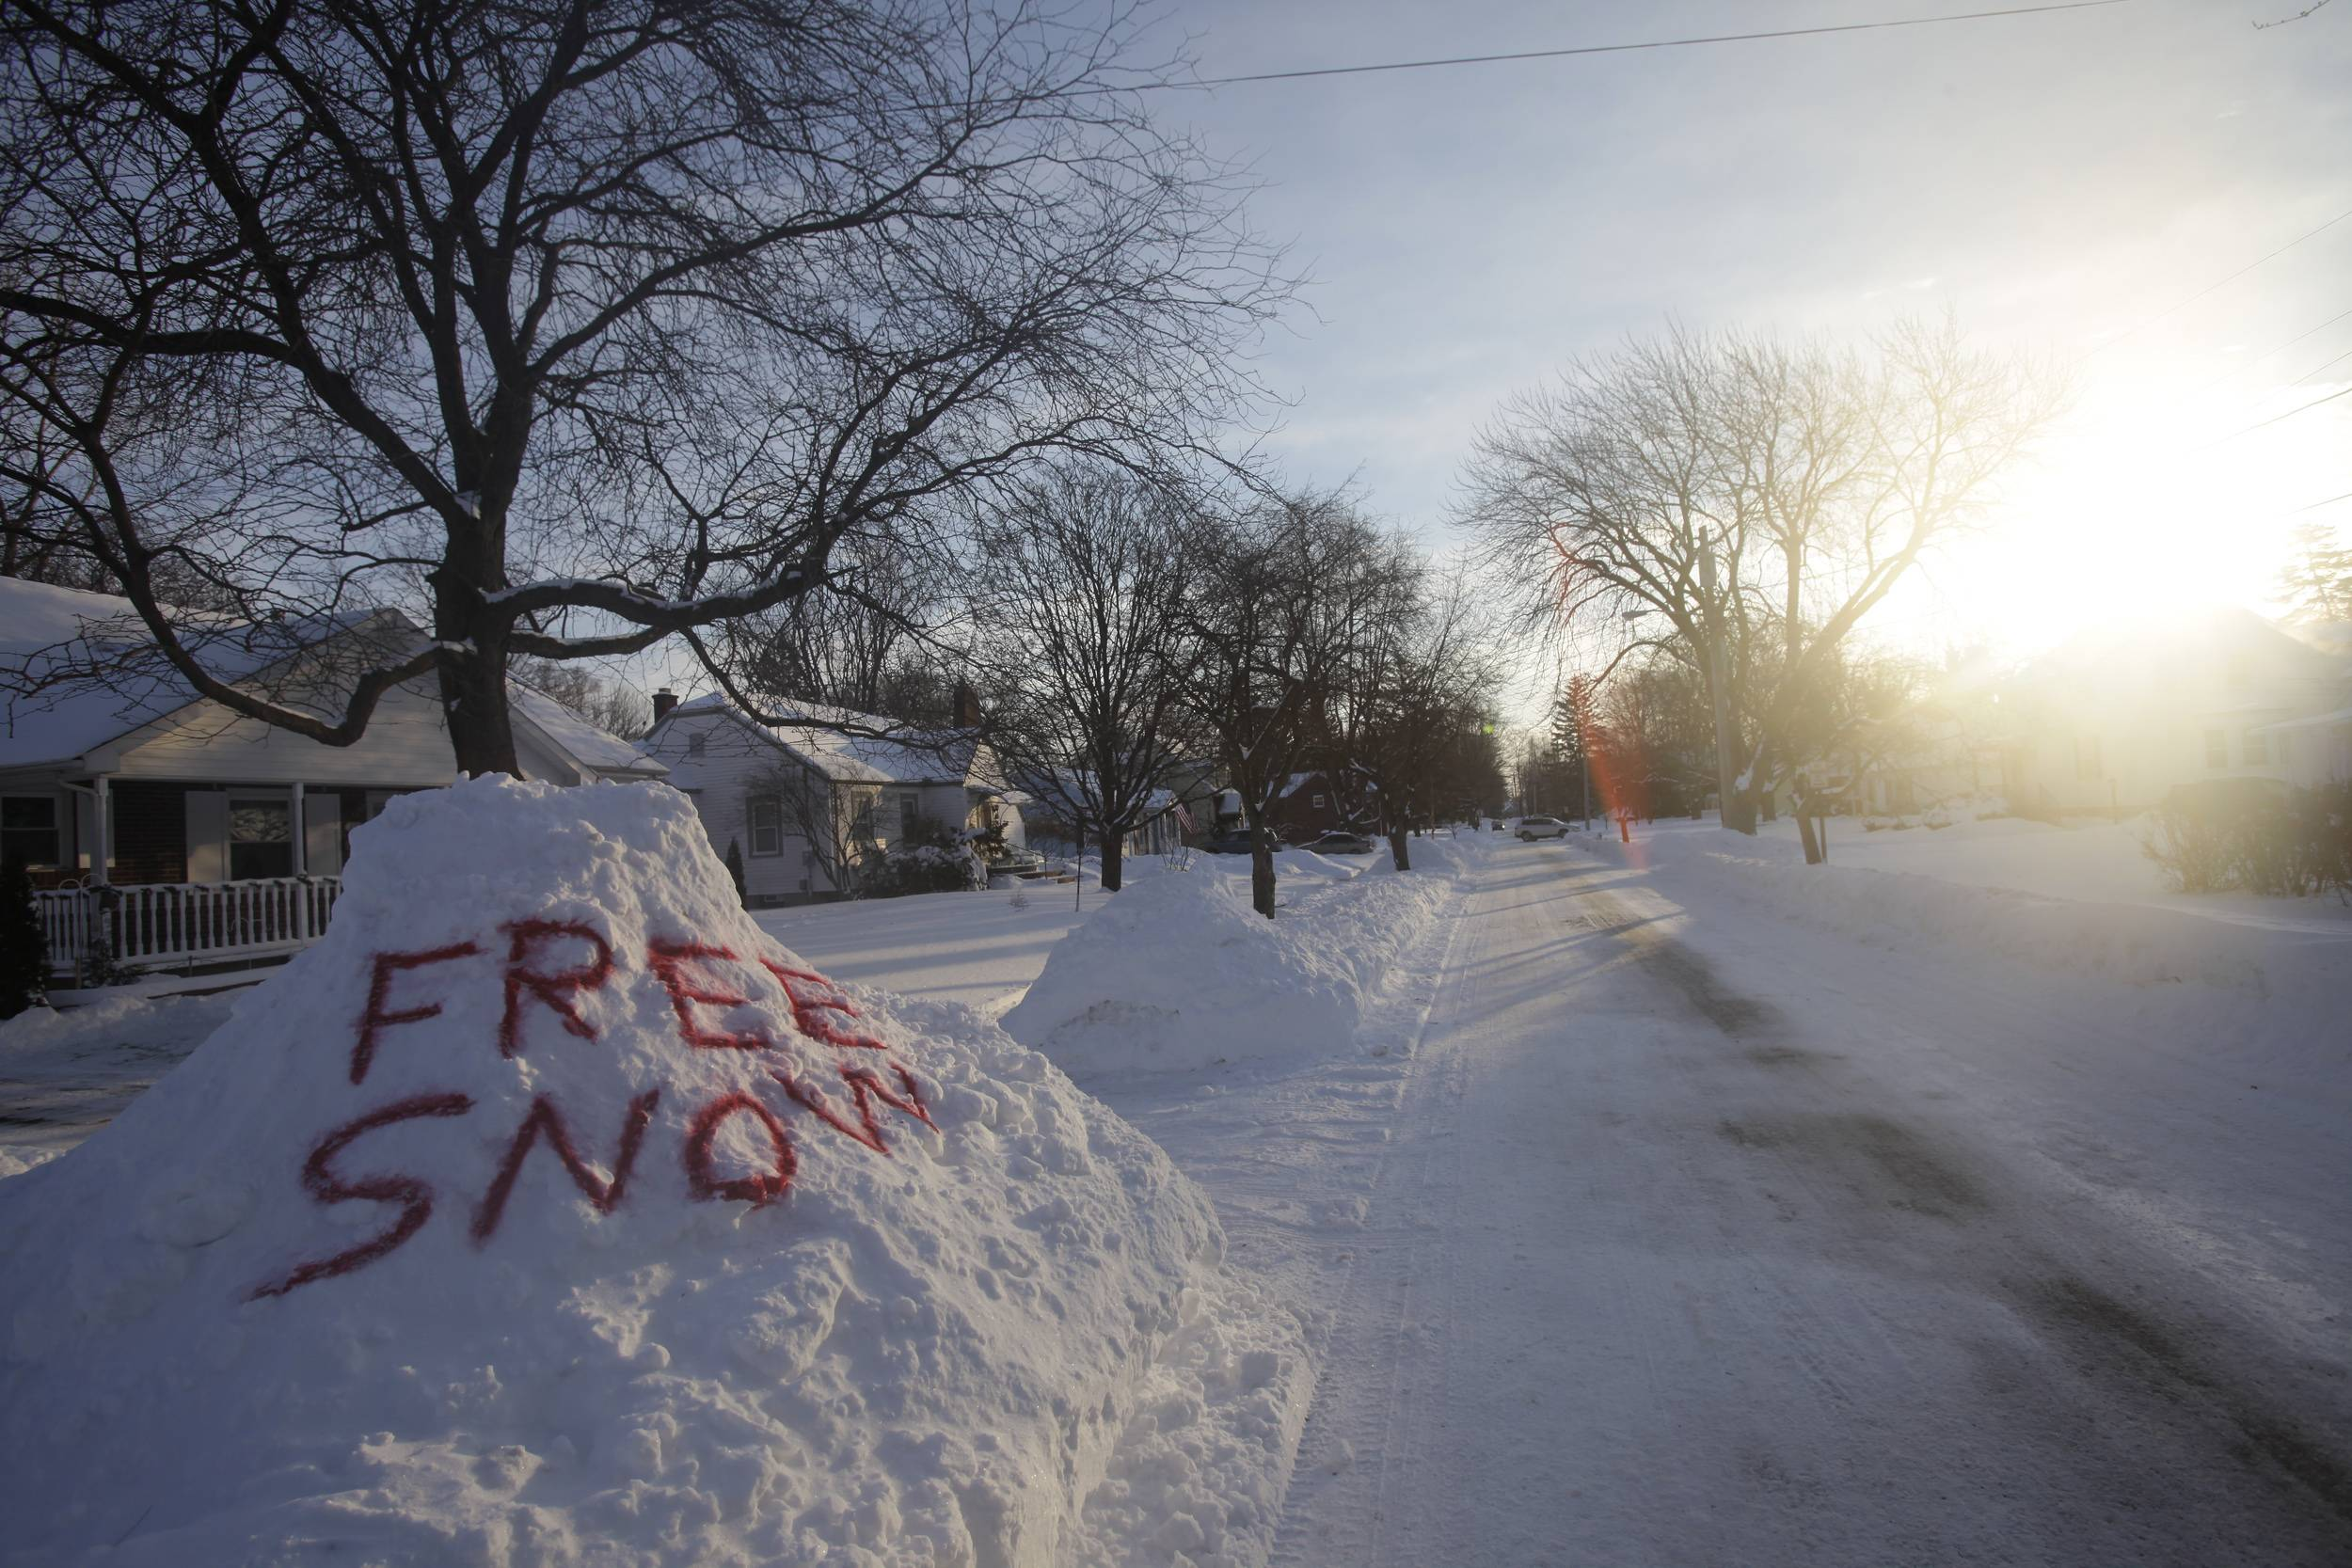 A pile of snow is seen spray painted, Friday, Feb. 7, 2014, along a residential street in Bowling Green, Ohio. Parts of Ohio have seen record amounts of snow this winter.